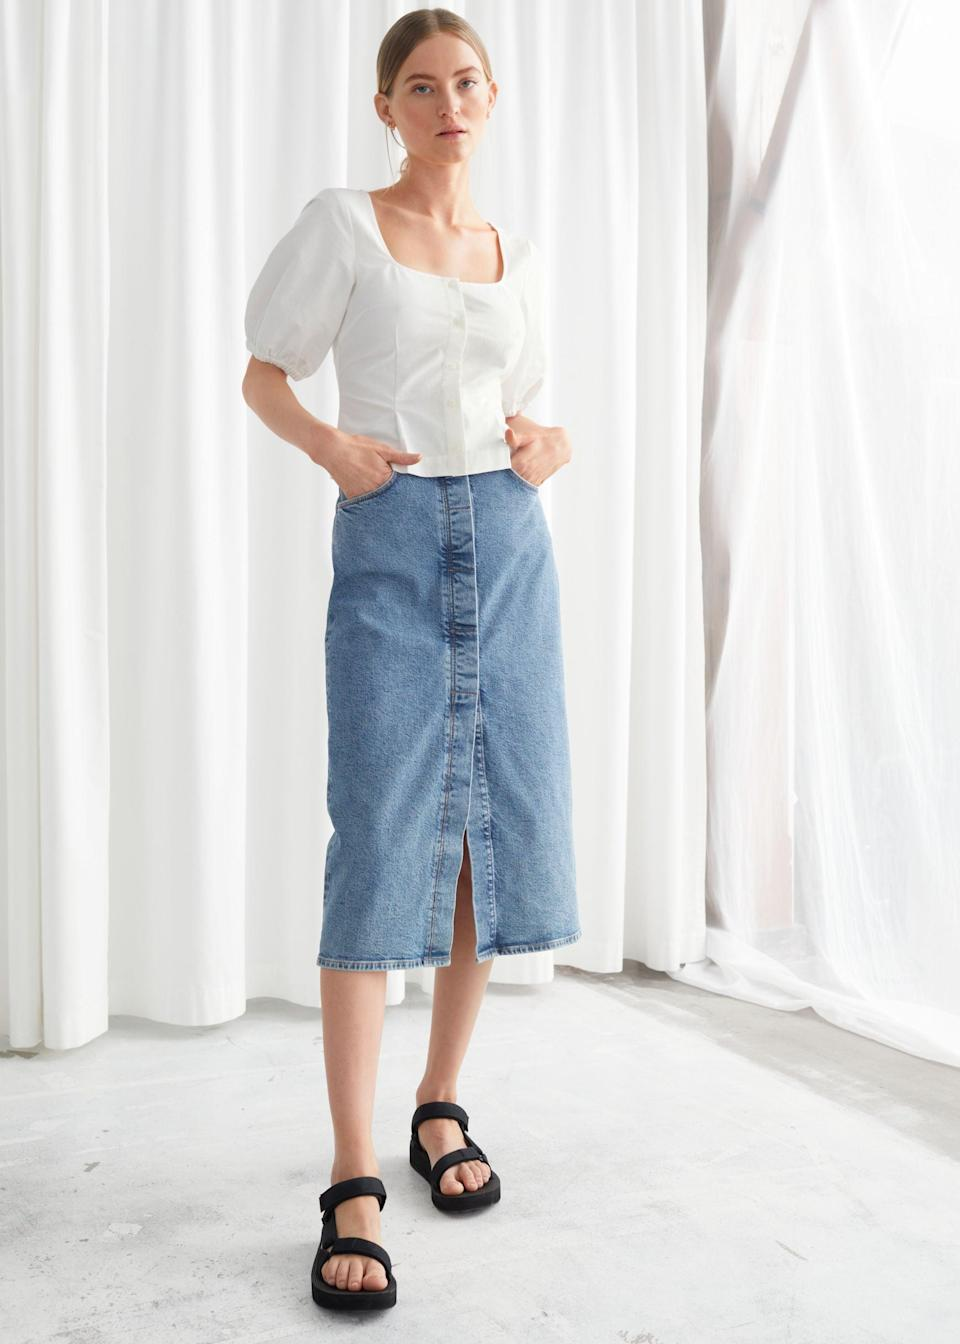 "<br> <br> <strong>& Other Stories</strong> Fitted Denim Midi Skirt, $, available at <a href=""https://go.skimresources.com/?id=30283X879131&url=https%3A%2F%2Fwww.stories.com%2Fen_usd%2Fclothing%2Fskirts%2Fdenim-skirts%2Fproduct.fitted-denim-midi-skirt-blue.0843182001.html"" rel=""nofollow noopener"" target=""_blank"" data-ylk=""slk:& Other Stories"" class=""link rapid-noclick-resp"">& Other Stories</a>"